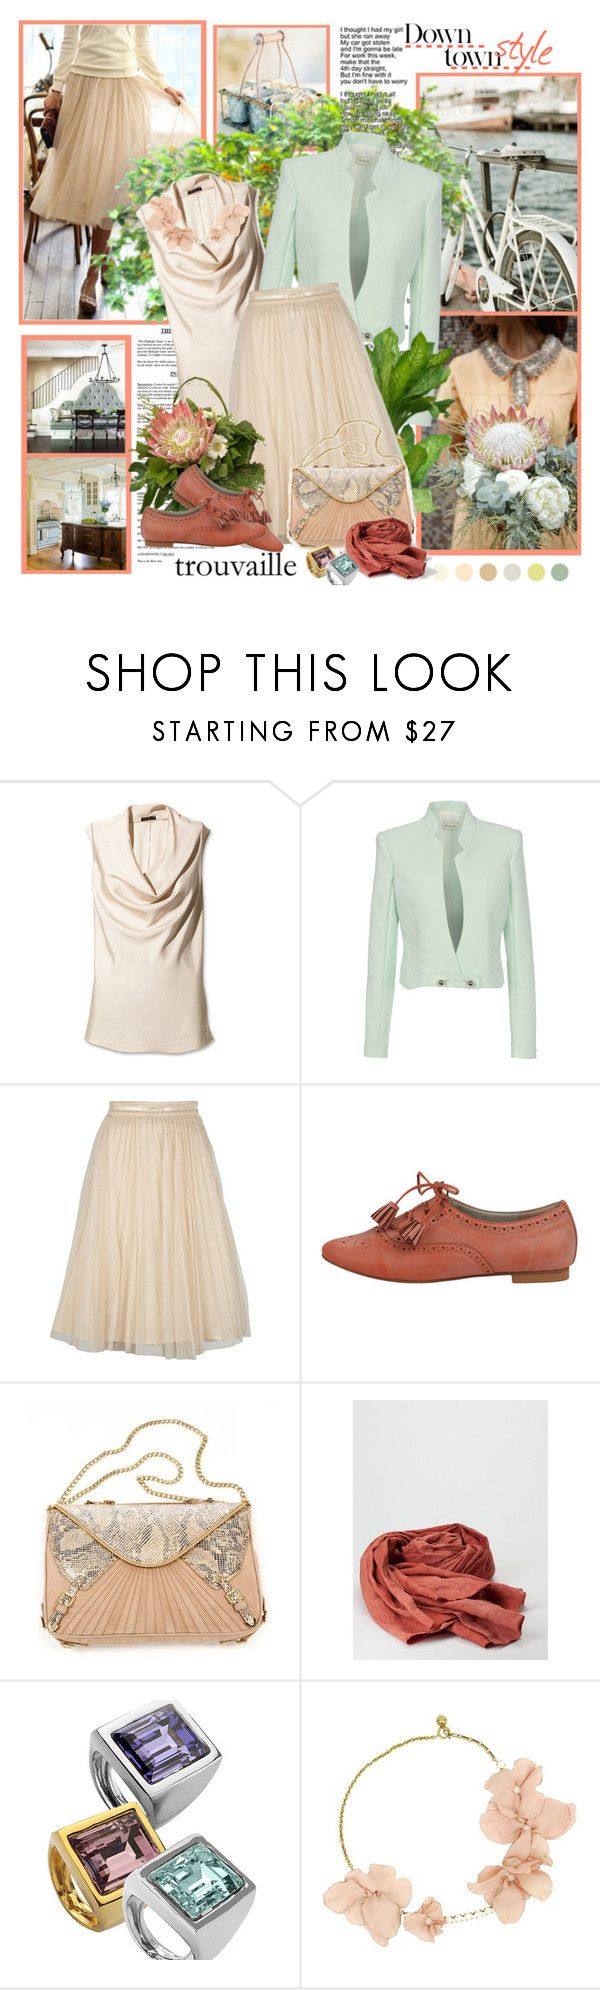 """trouvaille"" by helleka ❤ liked on Polyvore featuring Keen Footwear, PLANT, Theory, Thierry Mugler, Naf Naf, Rebecca Minkoff, Kenneth Jay Lane, Lanvin, pleated skirts and statement necklaces"